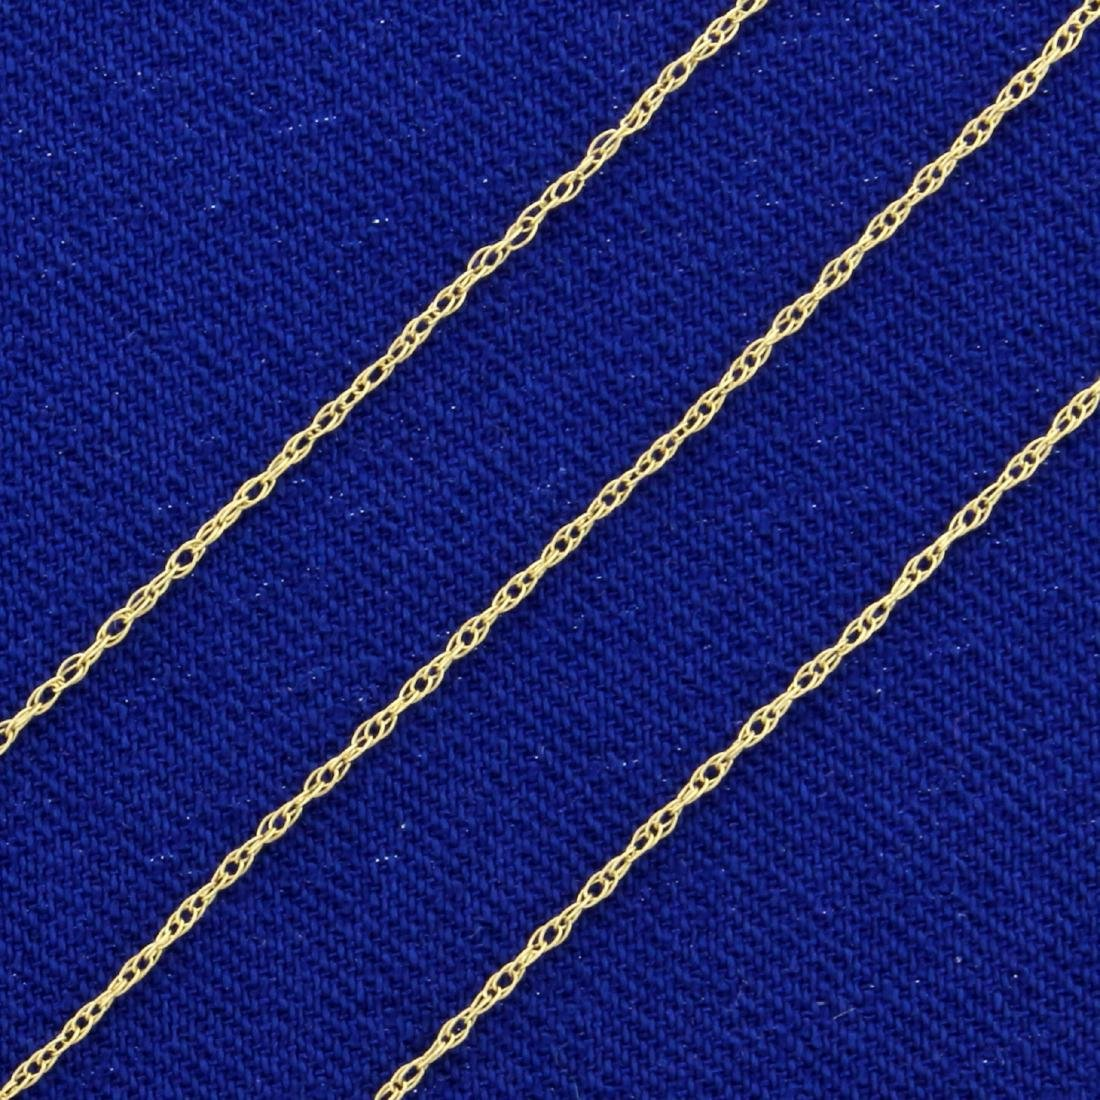 18 1/2 Inch Rope Style Neck Chain in 10K Yellow Gold - 2